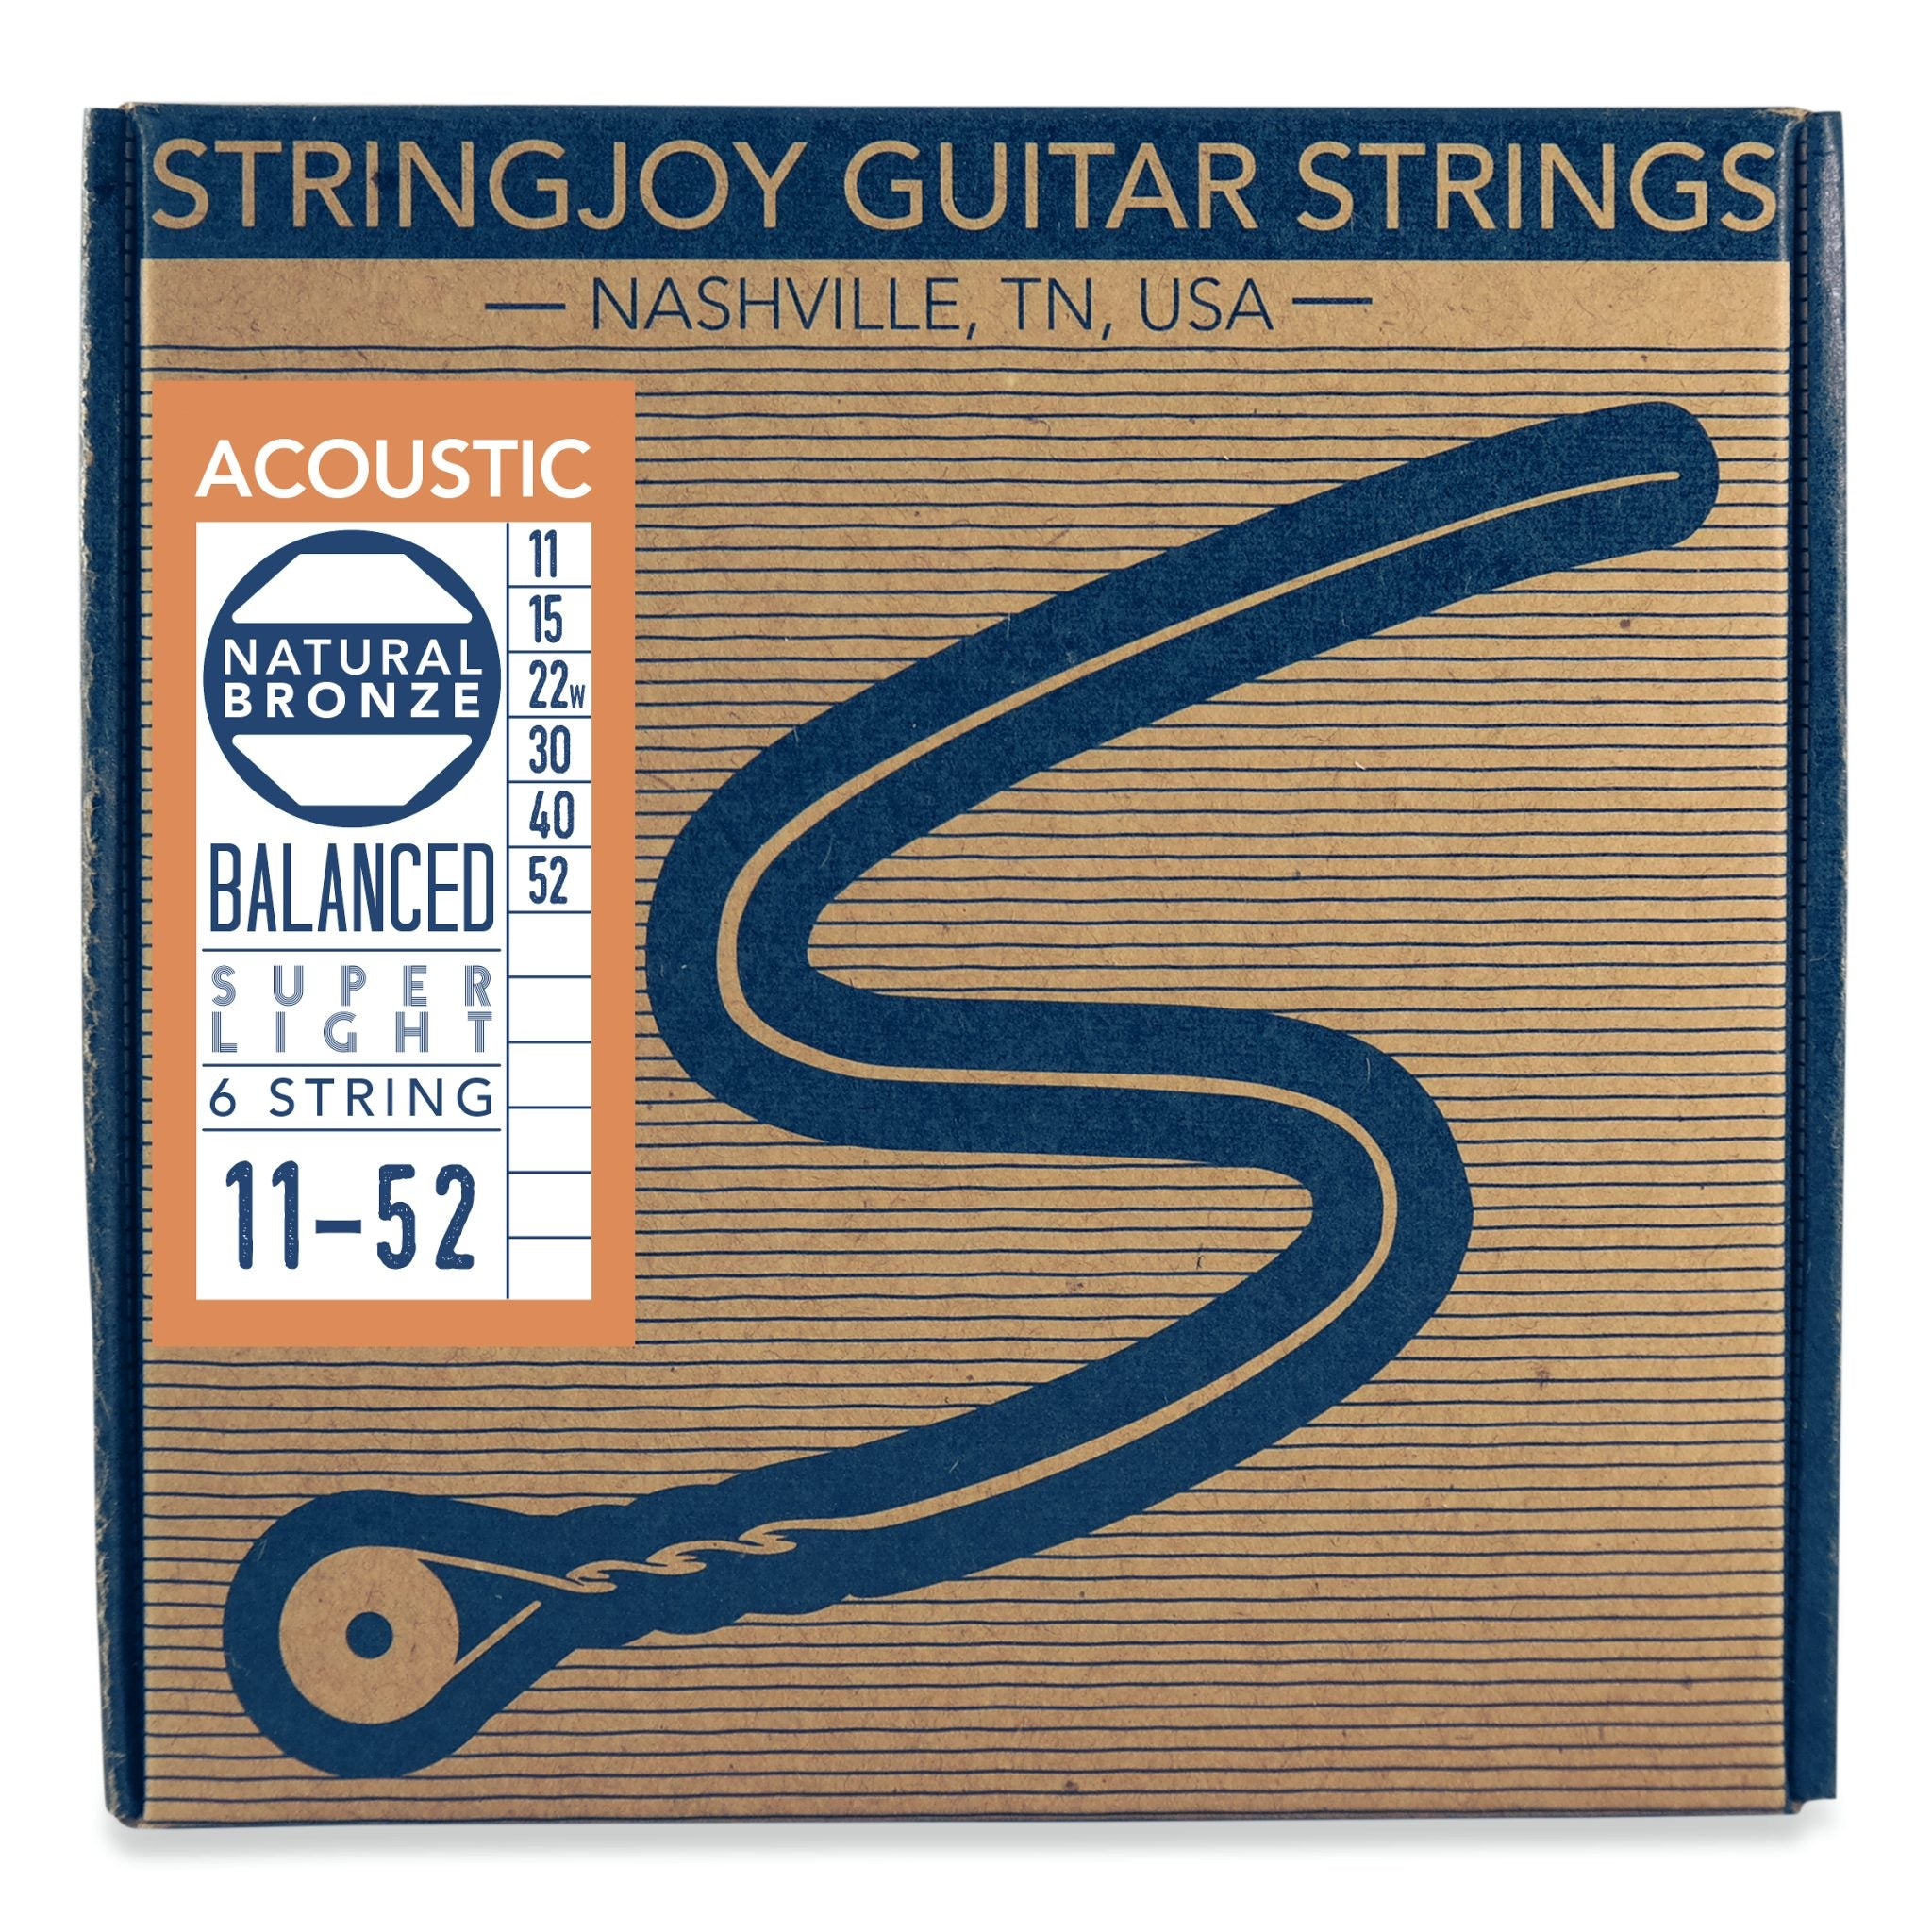 Stringjoy Naturals - Super Light Gauge (11-52) Phosphor Bronze Acoustic Guitar Strings